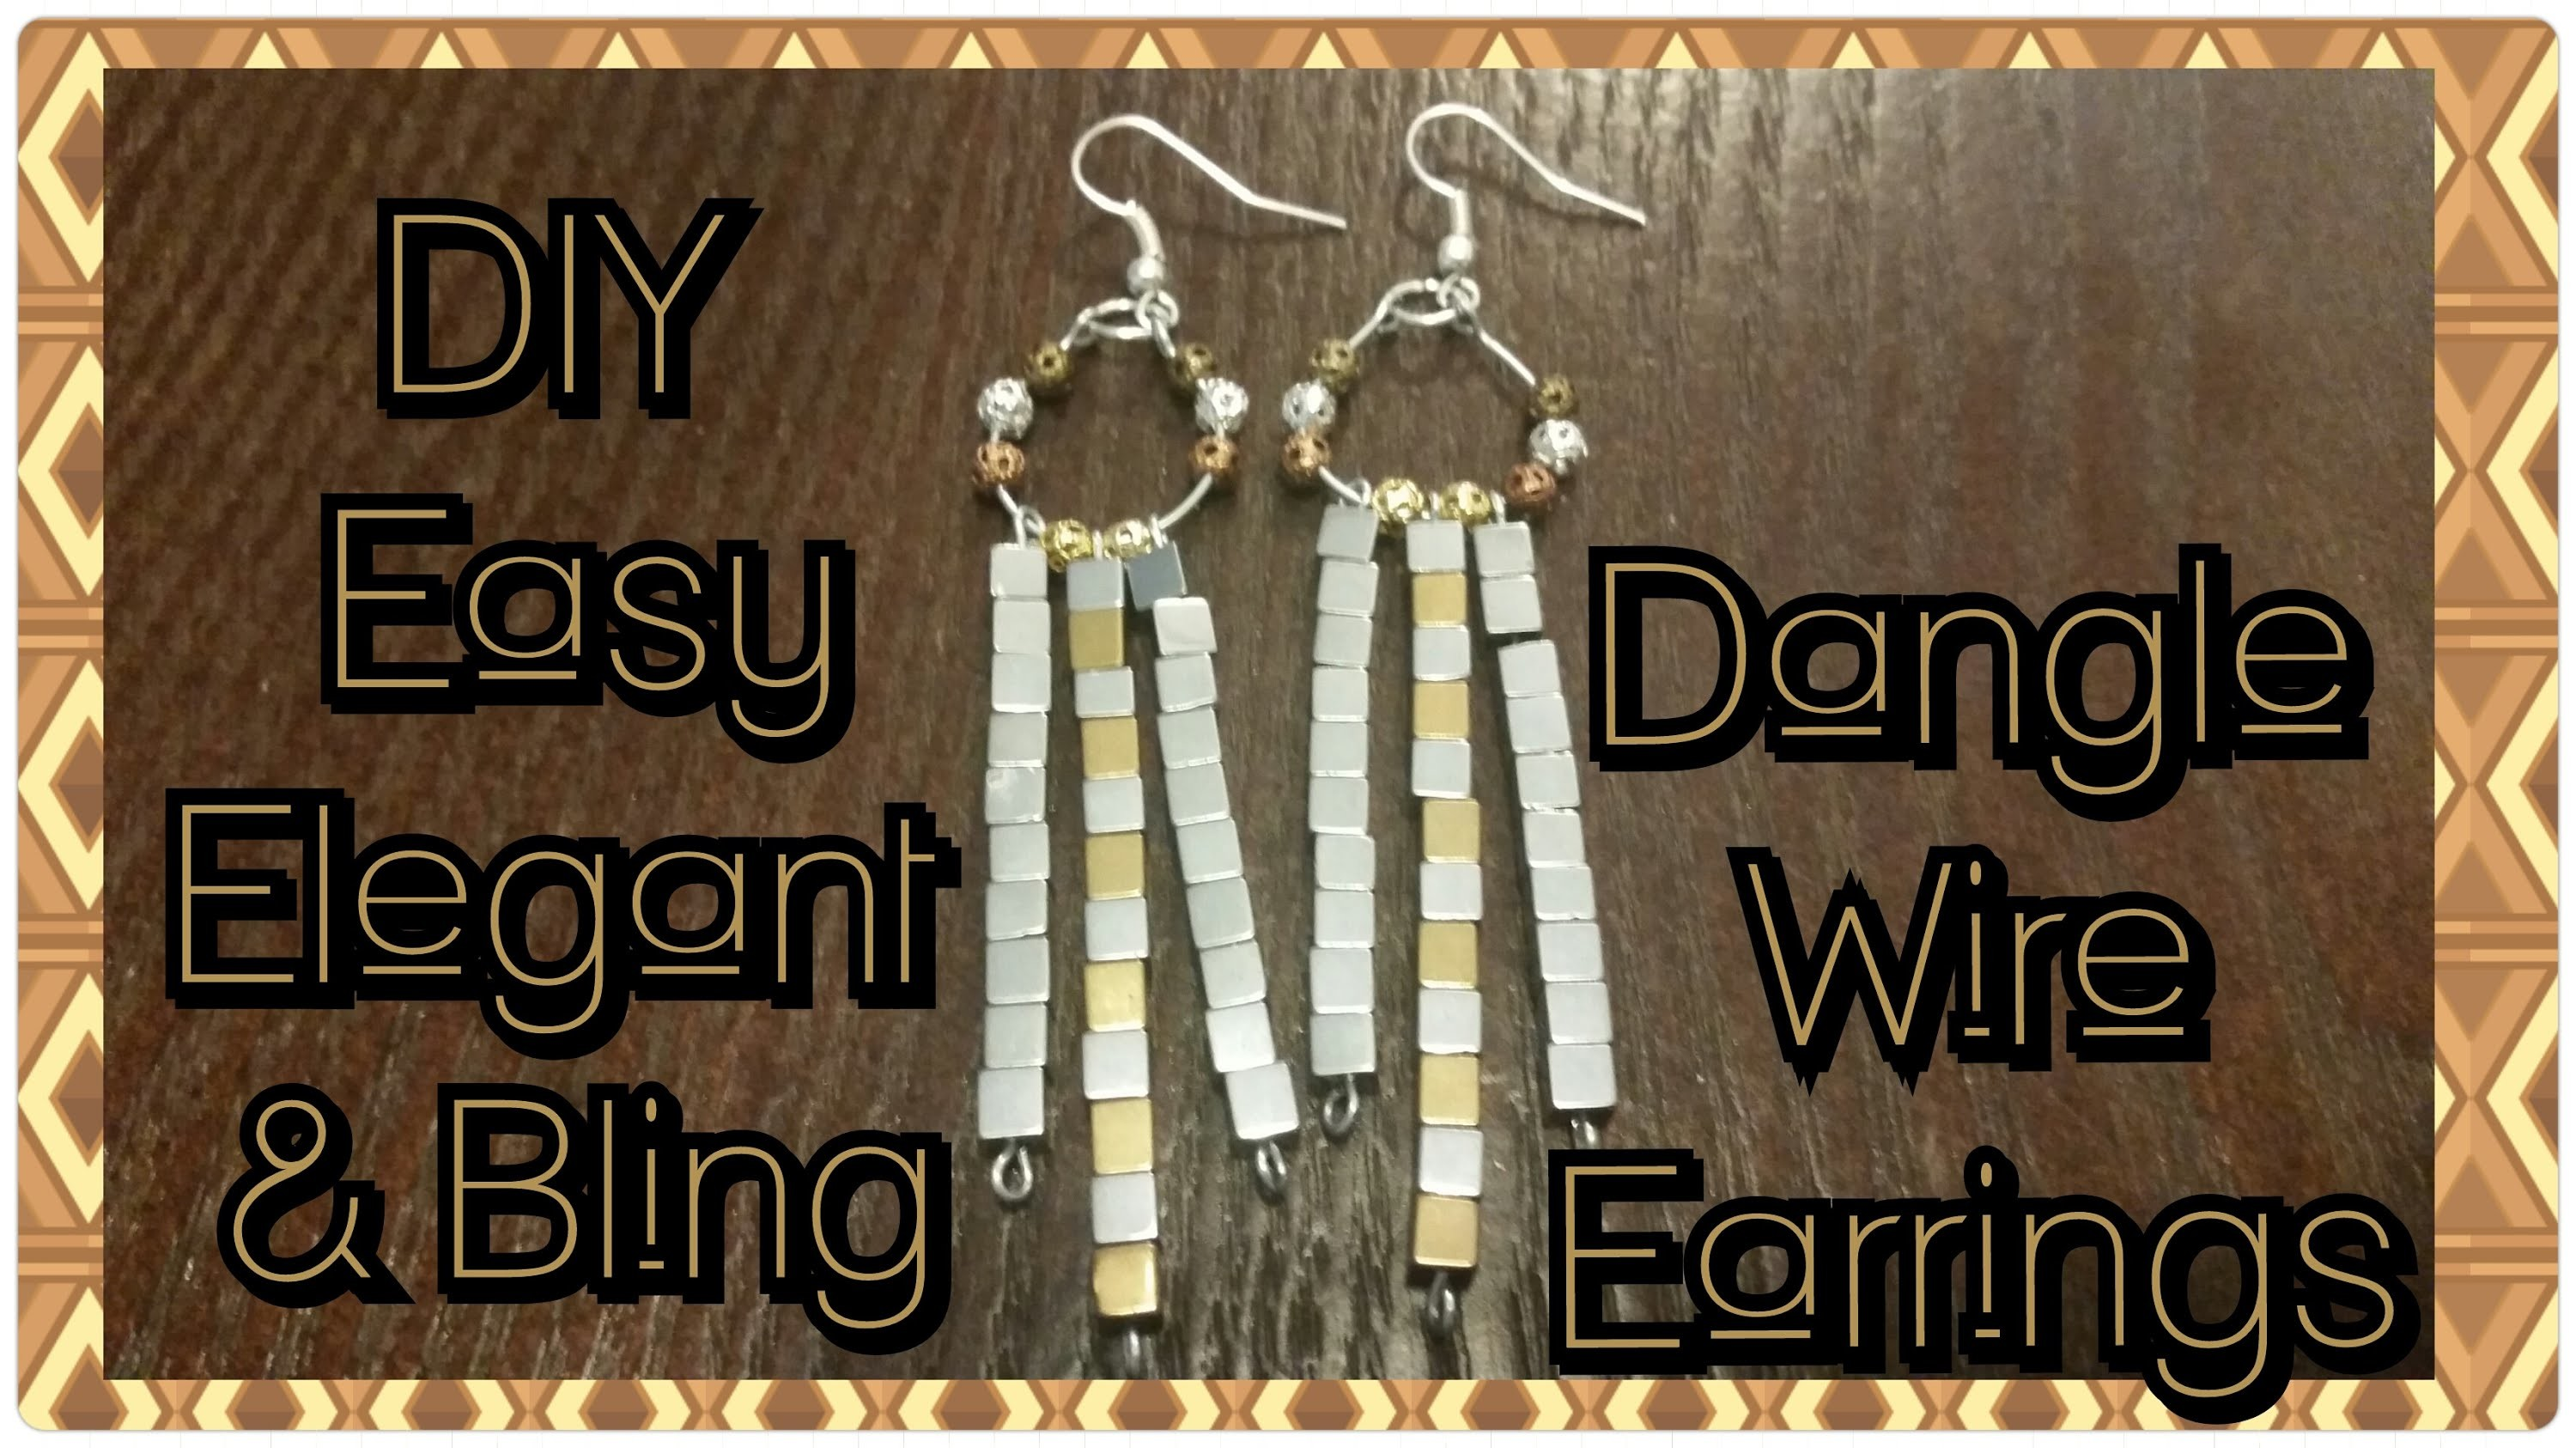 DIY Easy Elegant & Bling Dangle Wire Earrings